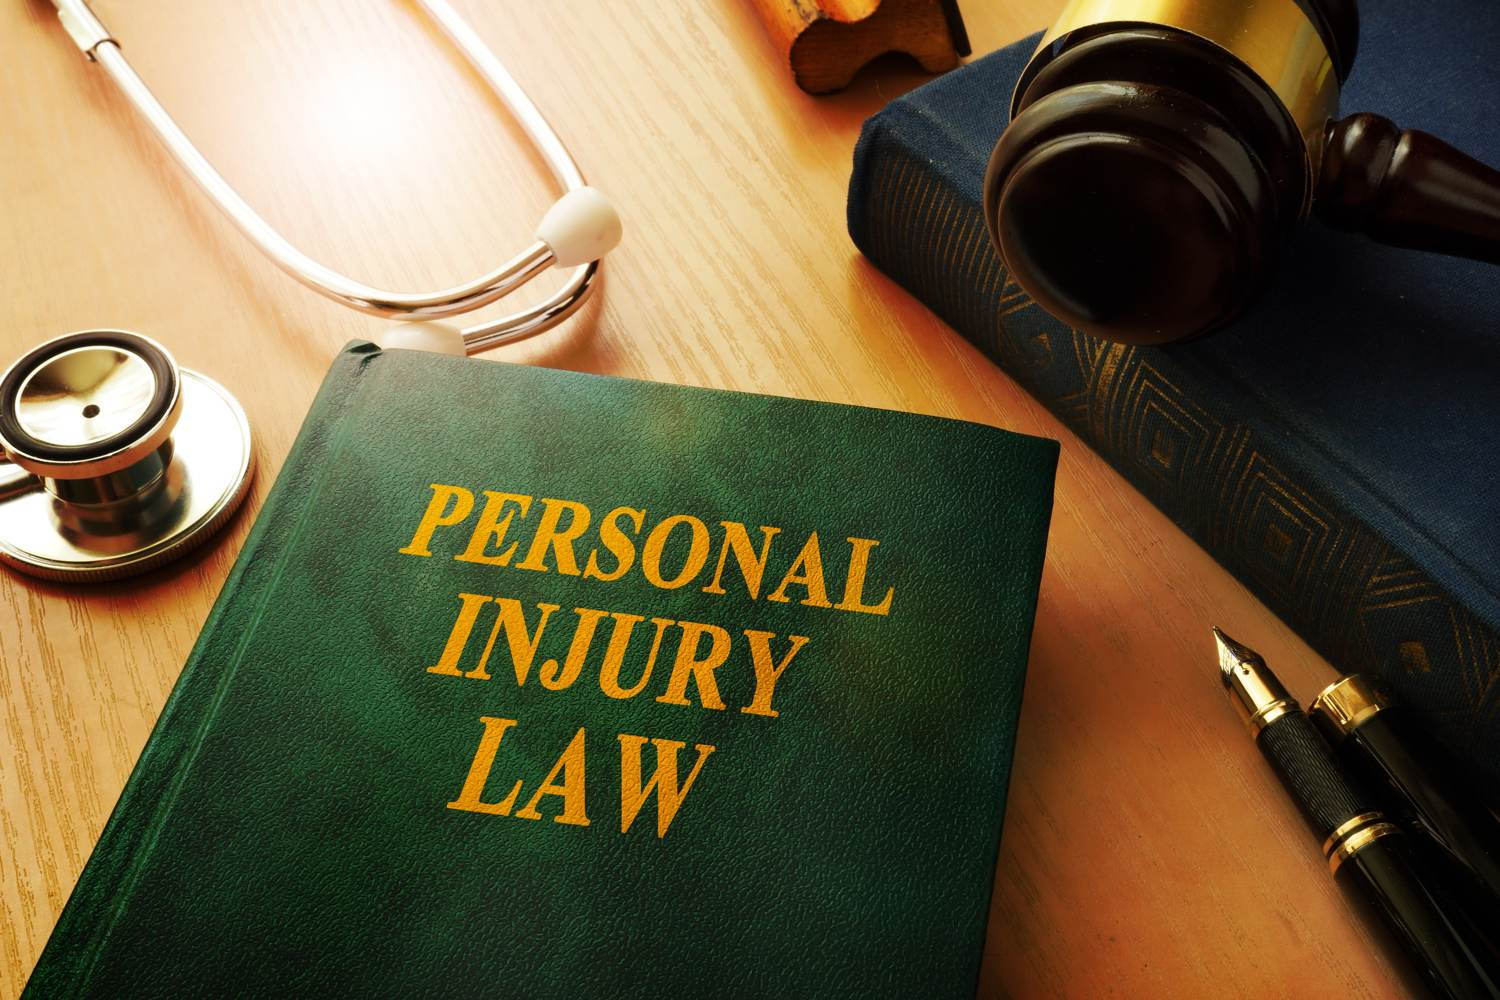 The facts about under-settled personal injury claims